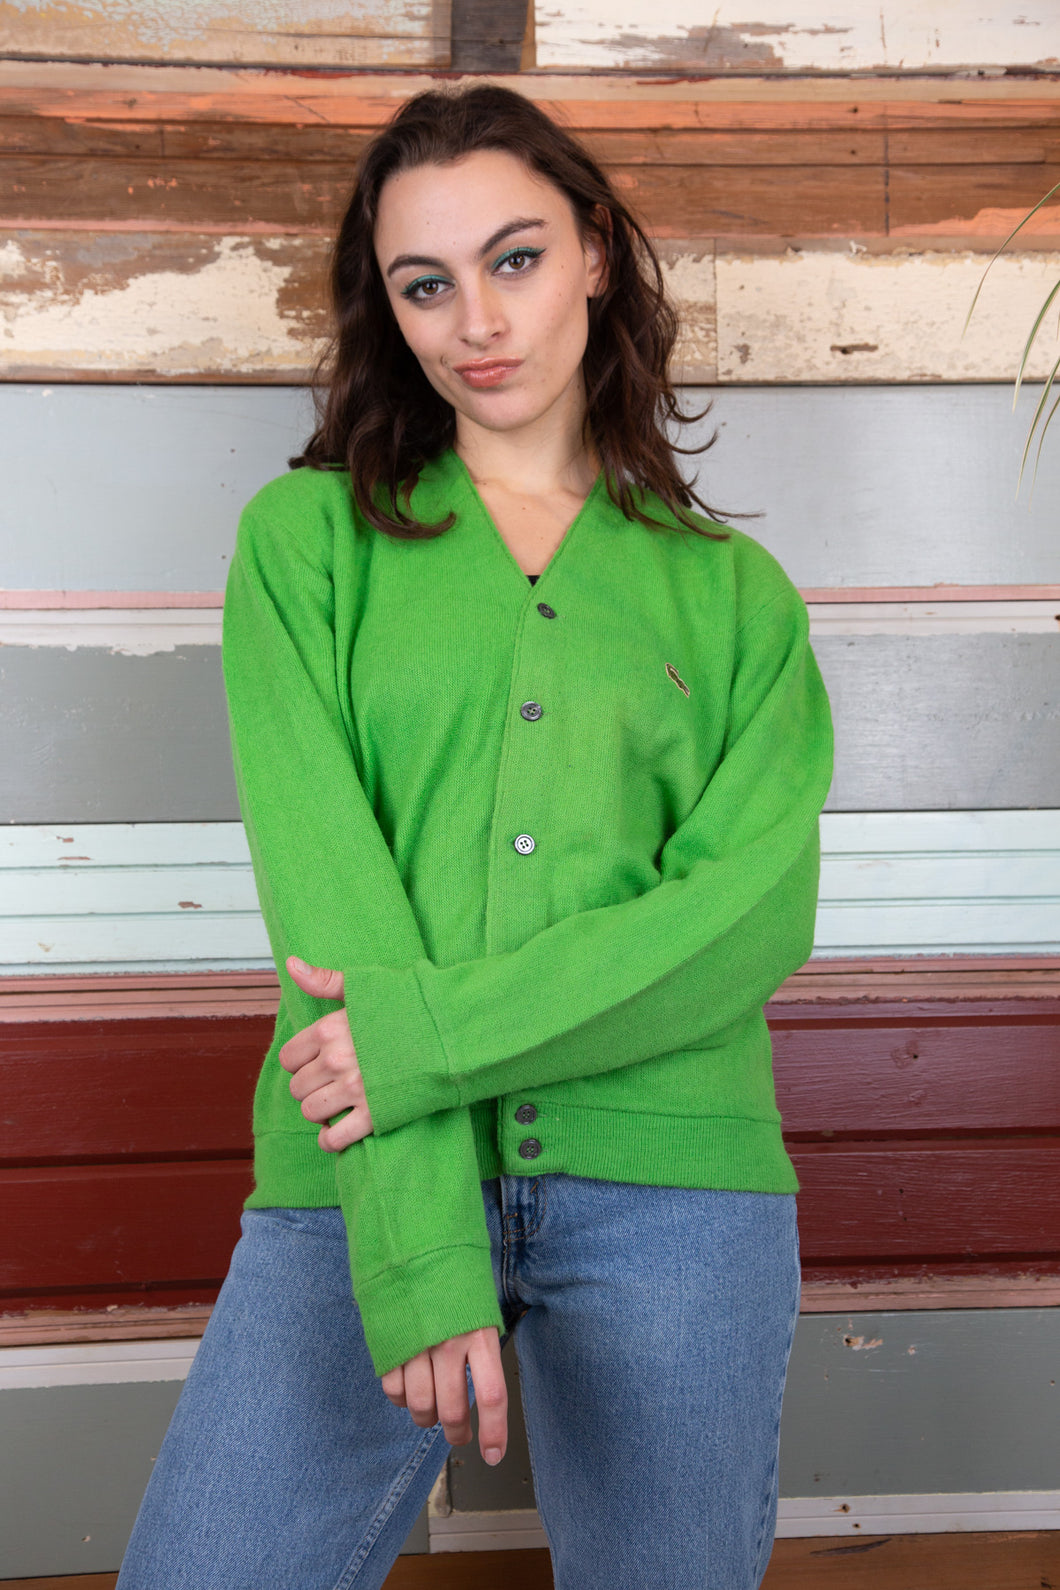 the model is wearing a green knitted sweater made from lacoste, this sweater fits oversized.